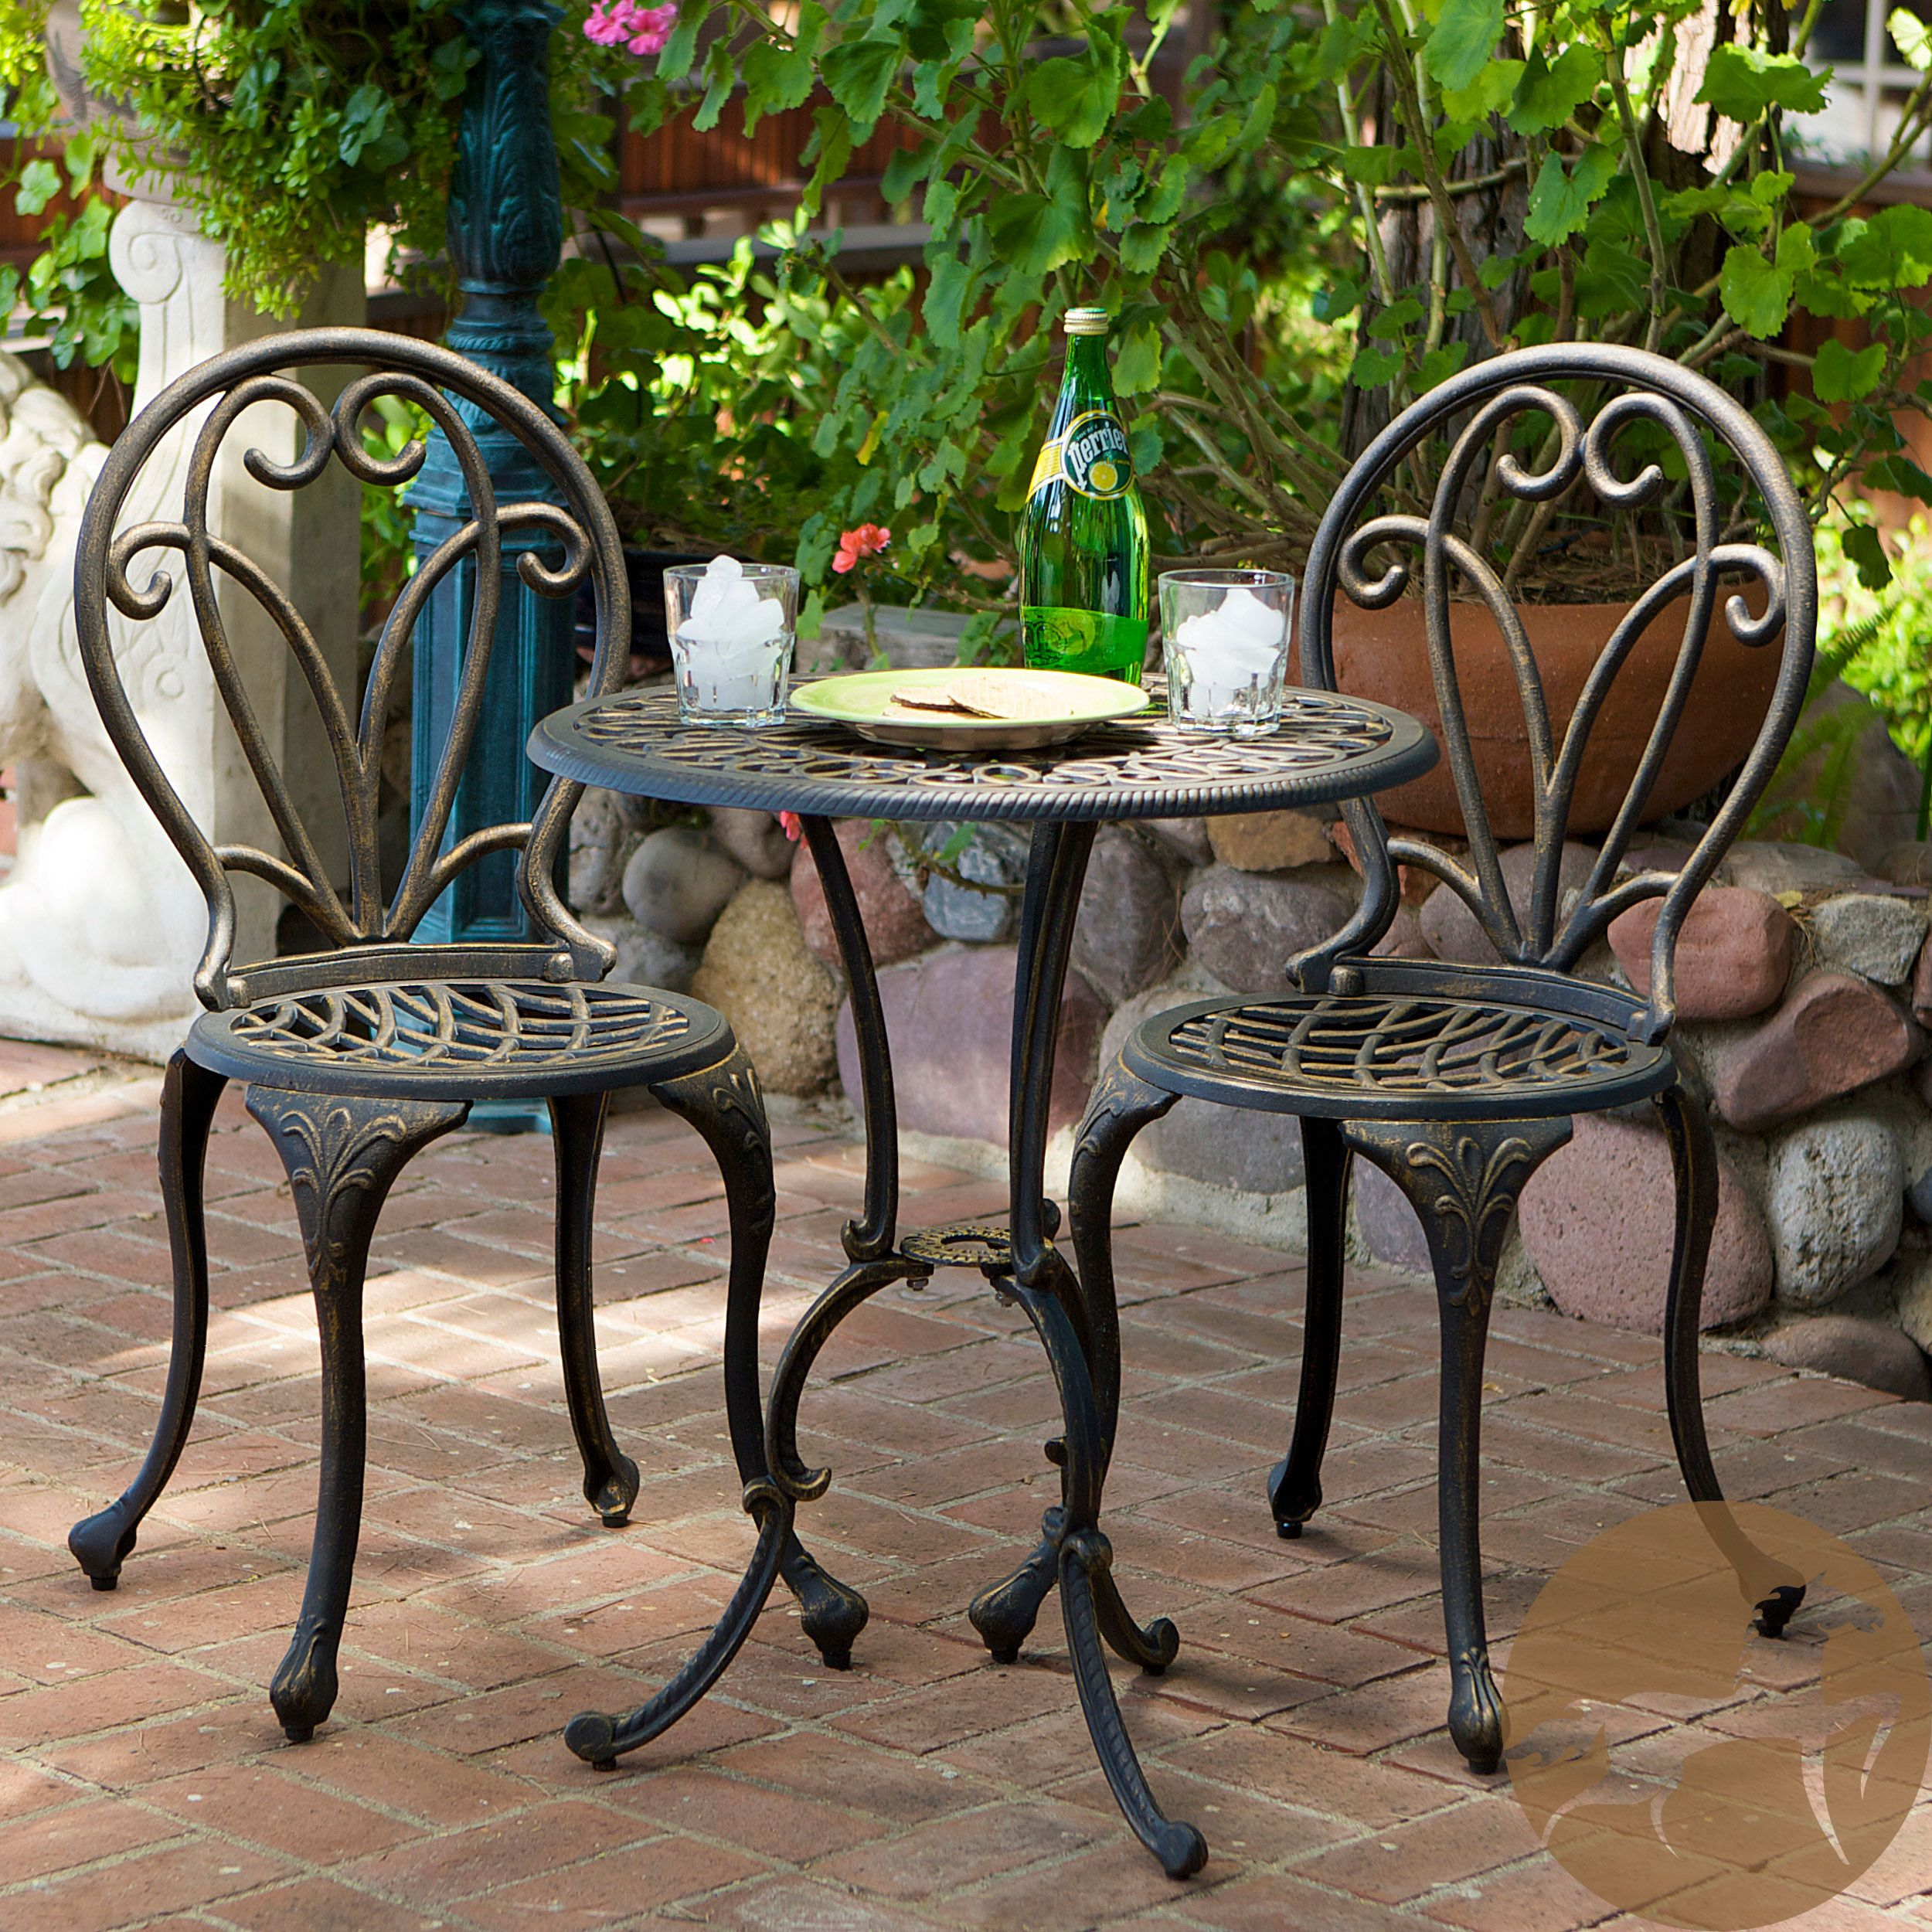 Thomas Table And Chairs Uk Dining Room Chair Covers Images This French Style Outdoor Bistro Set Will Lend Classy